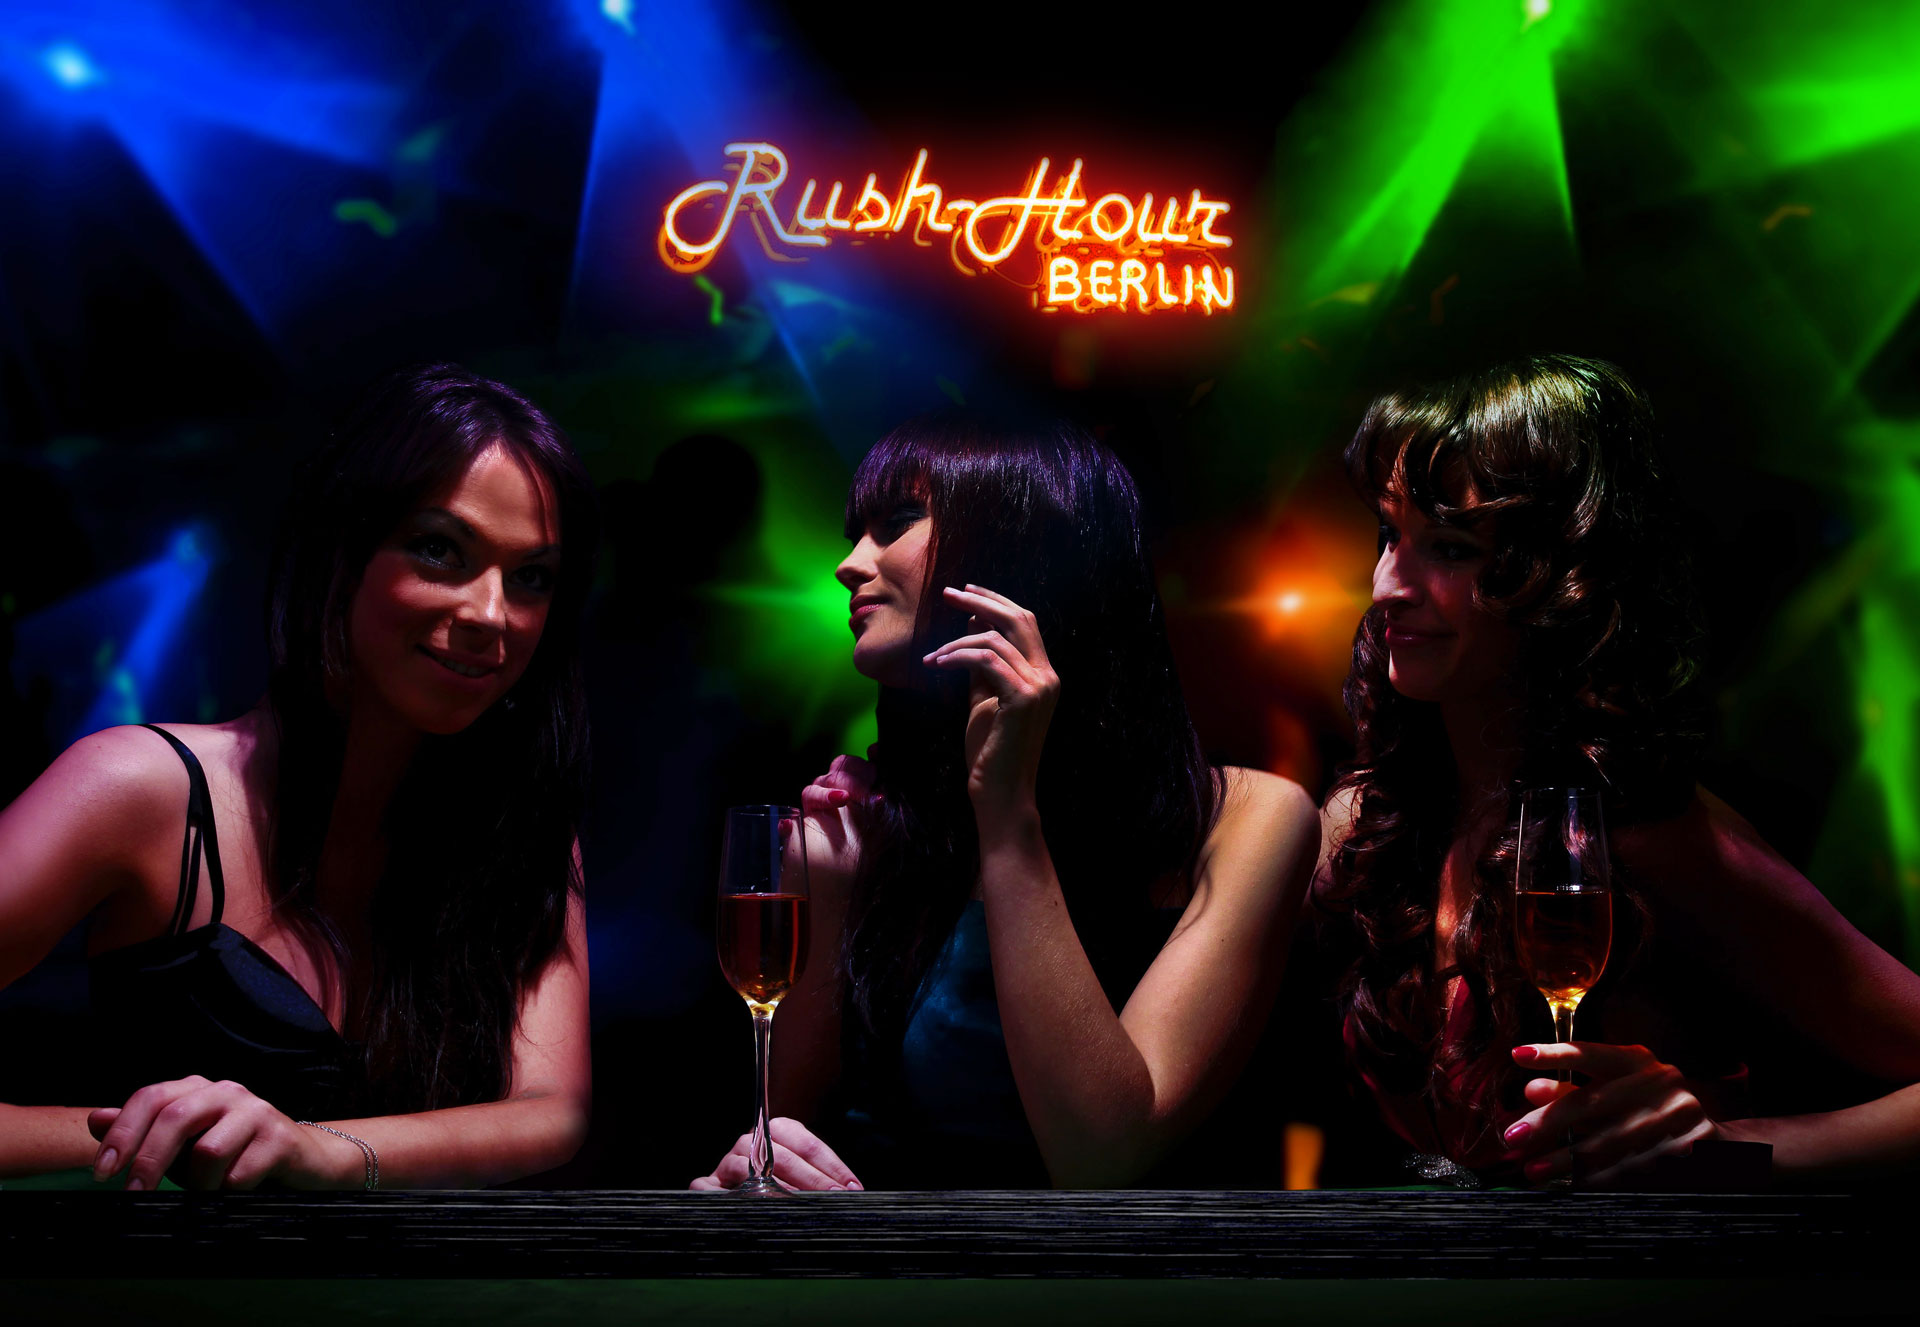 The Hottest Table Dance & Strip Club in Berlin - Rush Hour